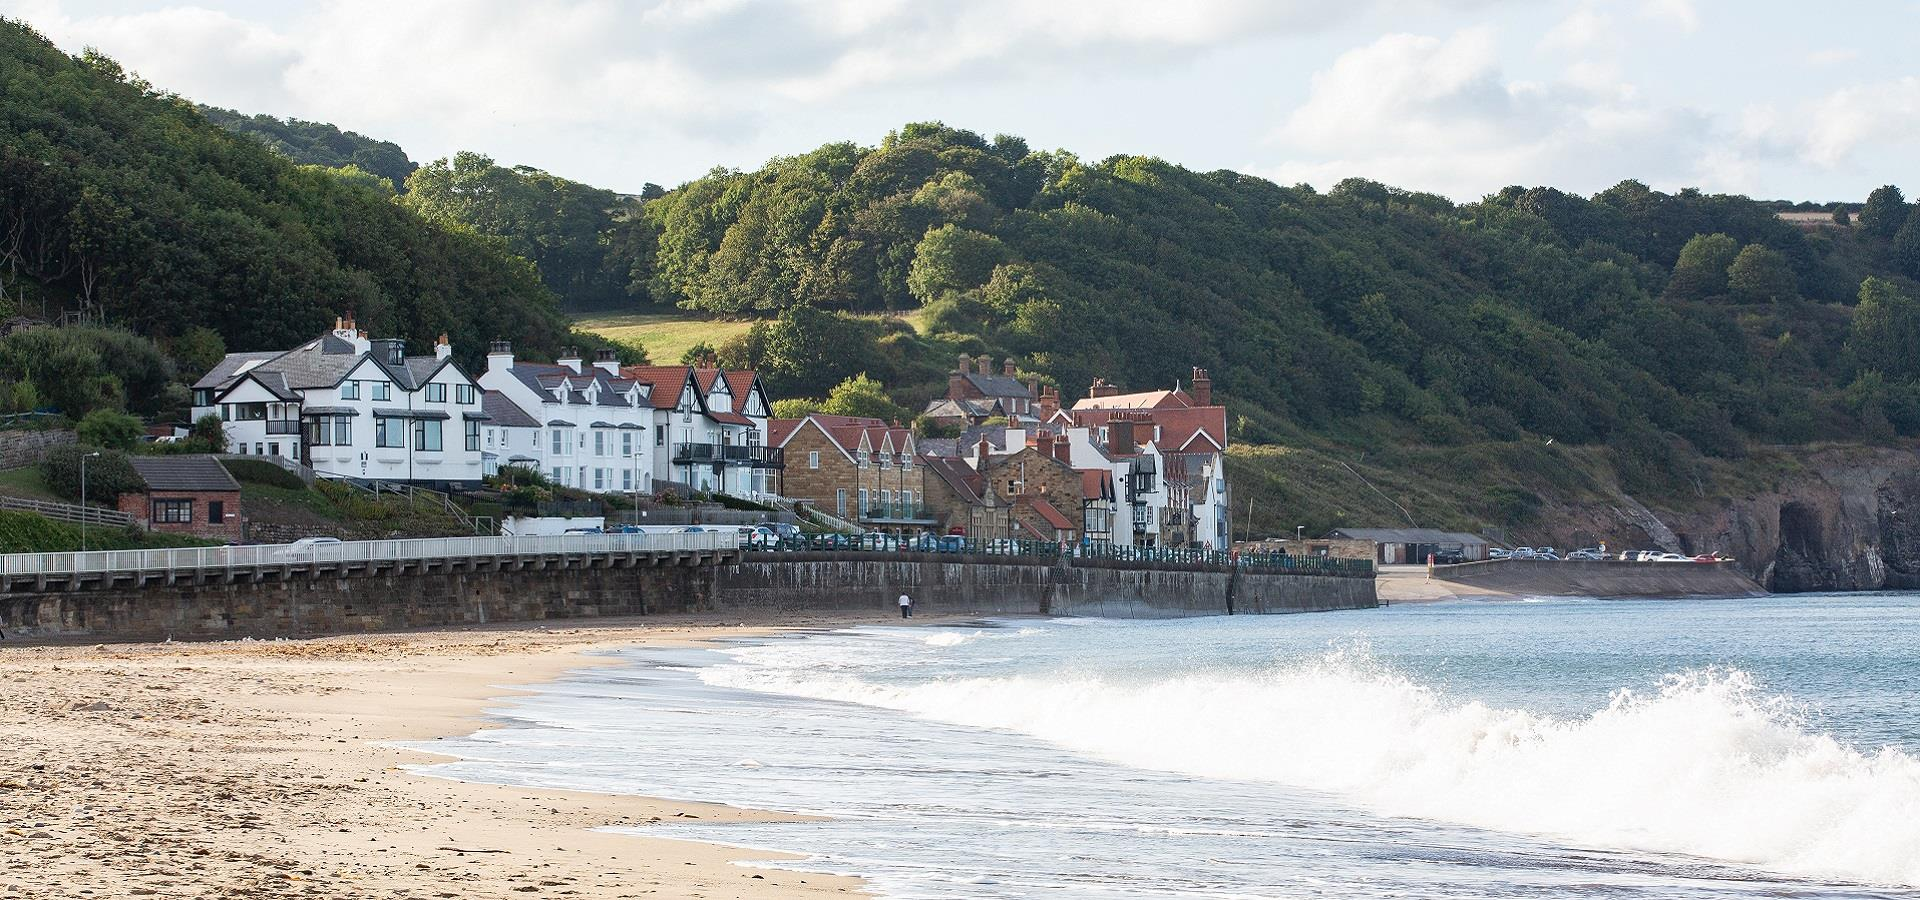 Sandsend Beach by Ravage Productions